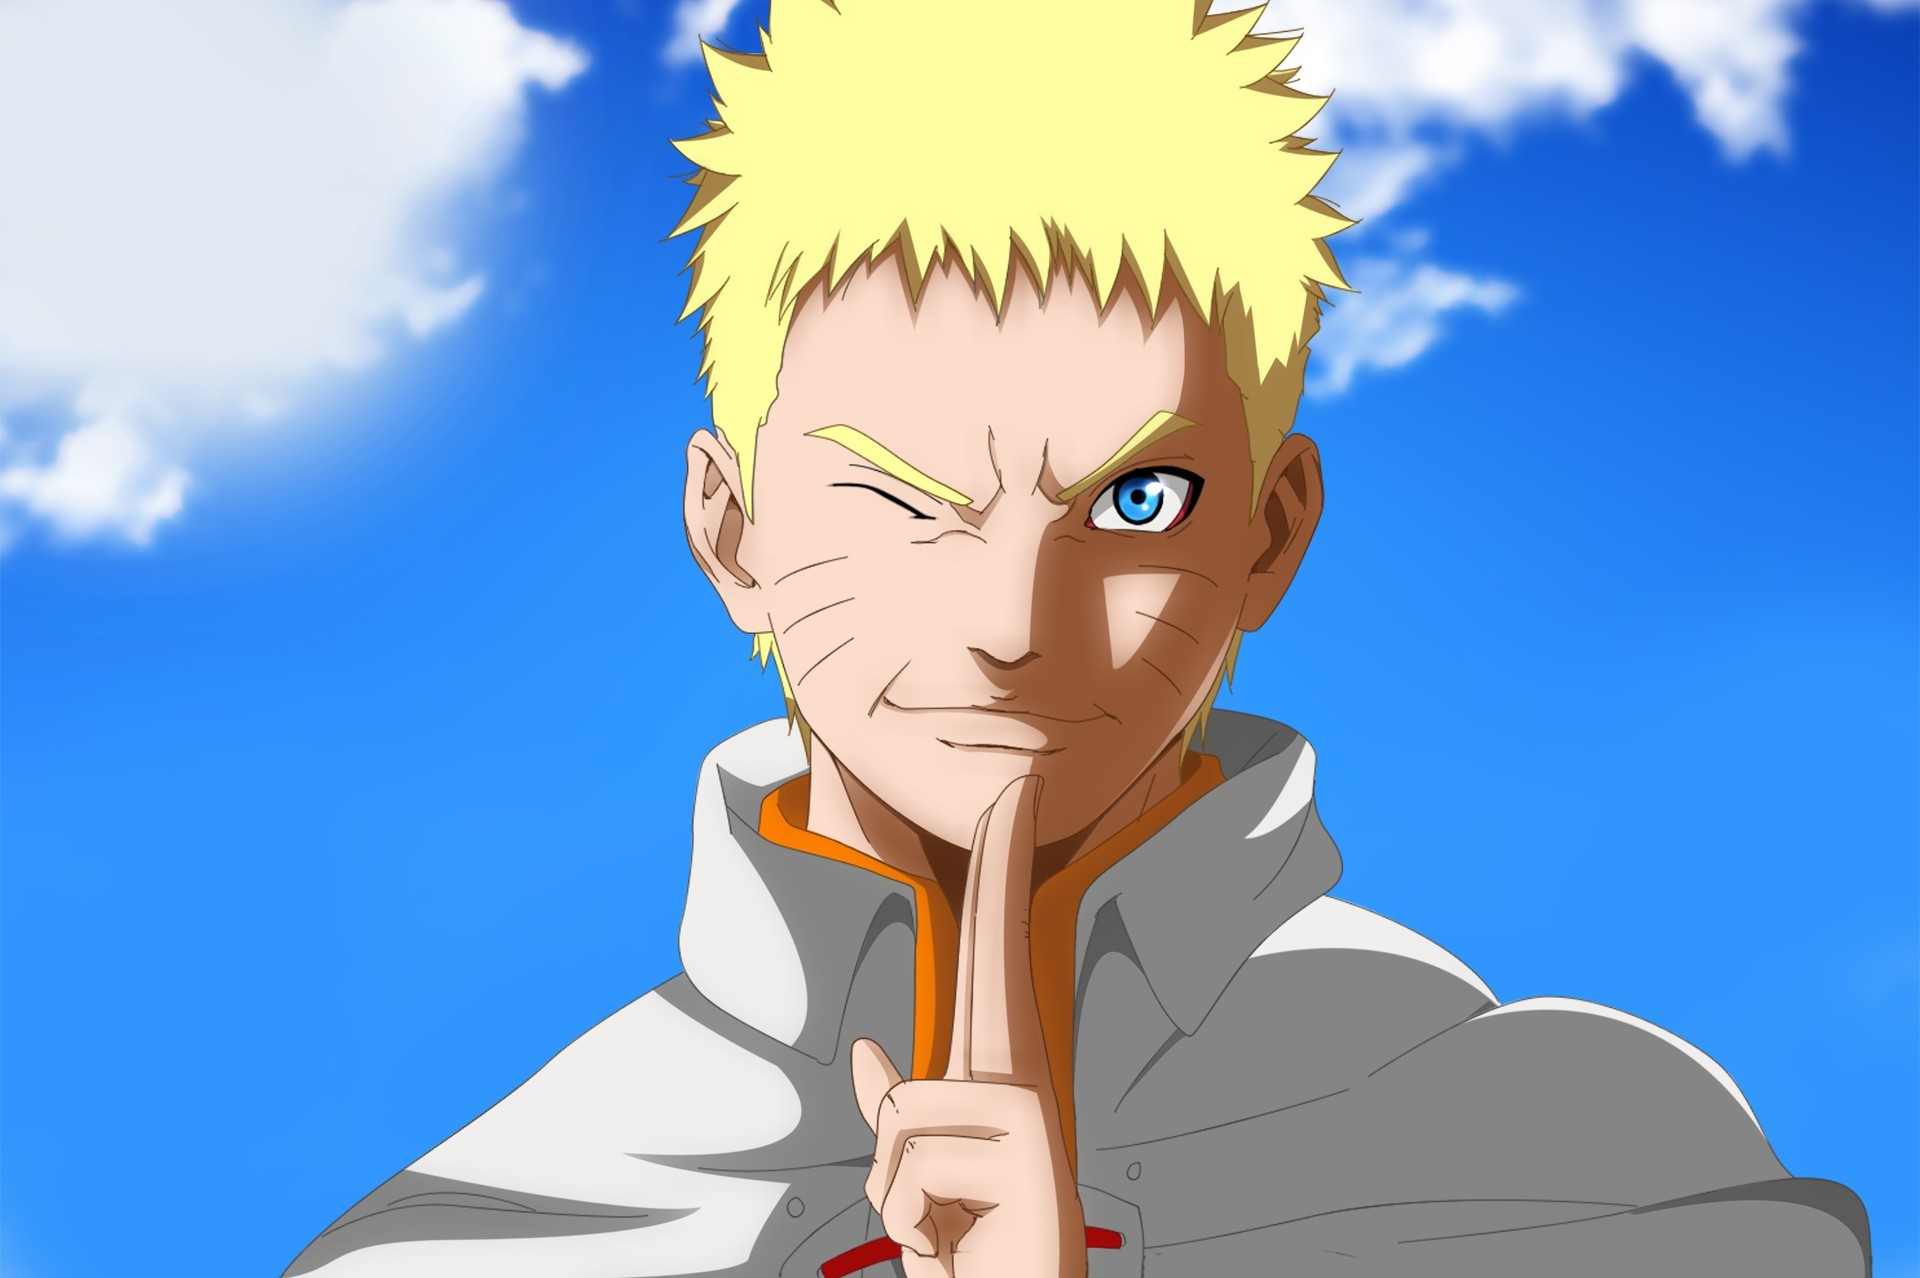 Download Wallpaper Game Naruto Shippuden Anime Hero